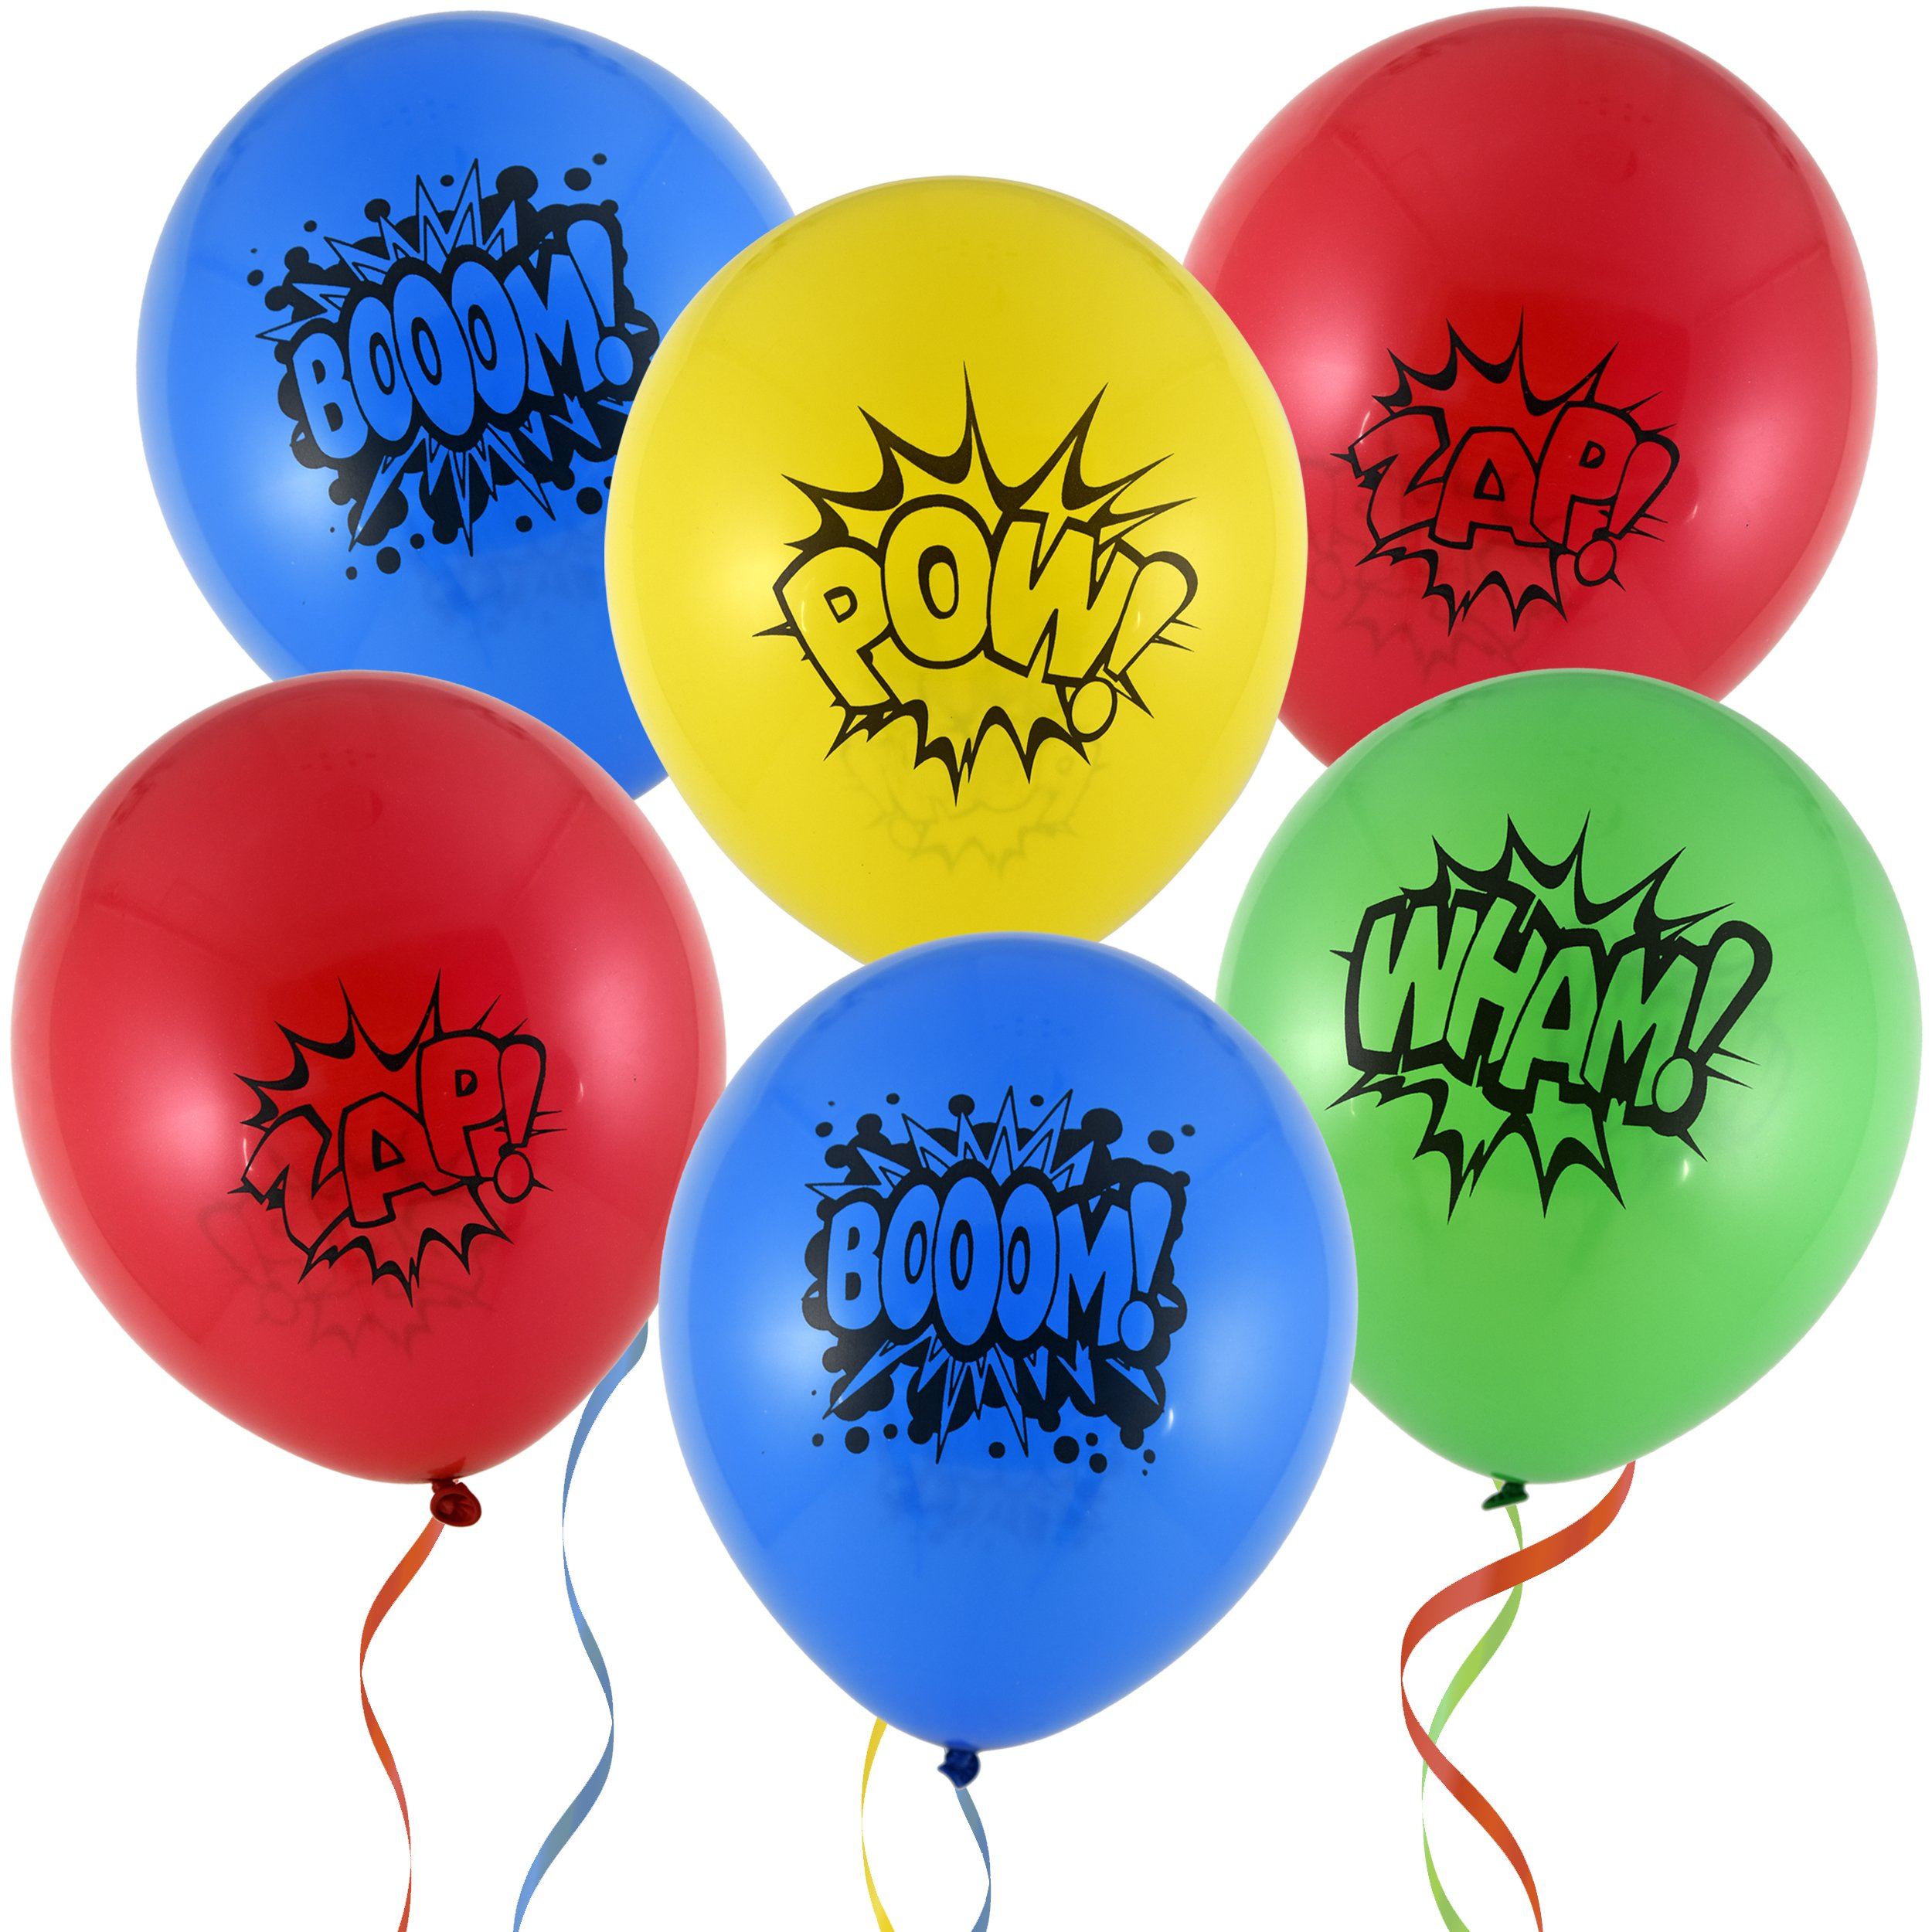 36 12'' Superhero Balloons 4 Assorted Colors & Designs Red Blue Yellow & Green for Kids Birthday Party Favor Supplies Decorations by Gift Boutique